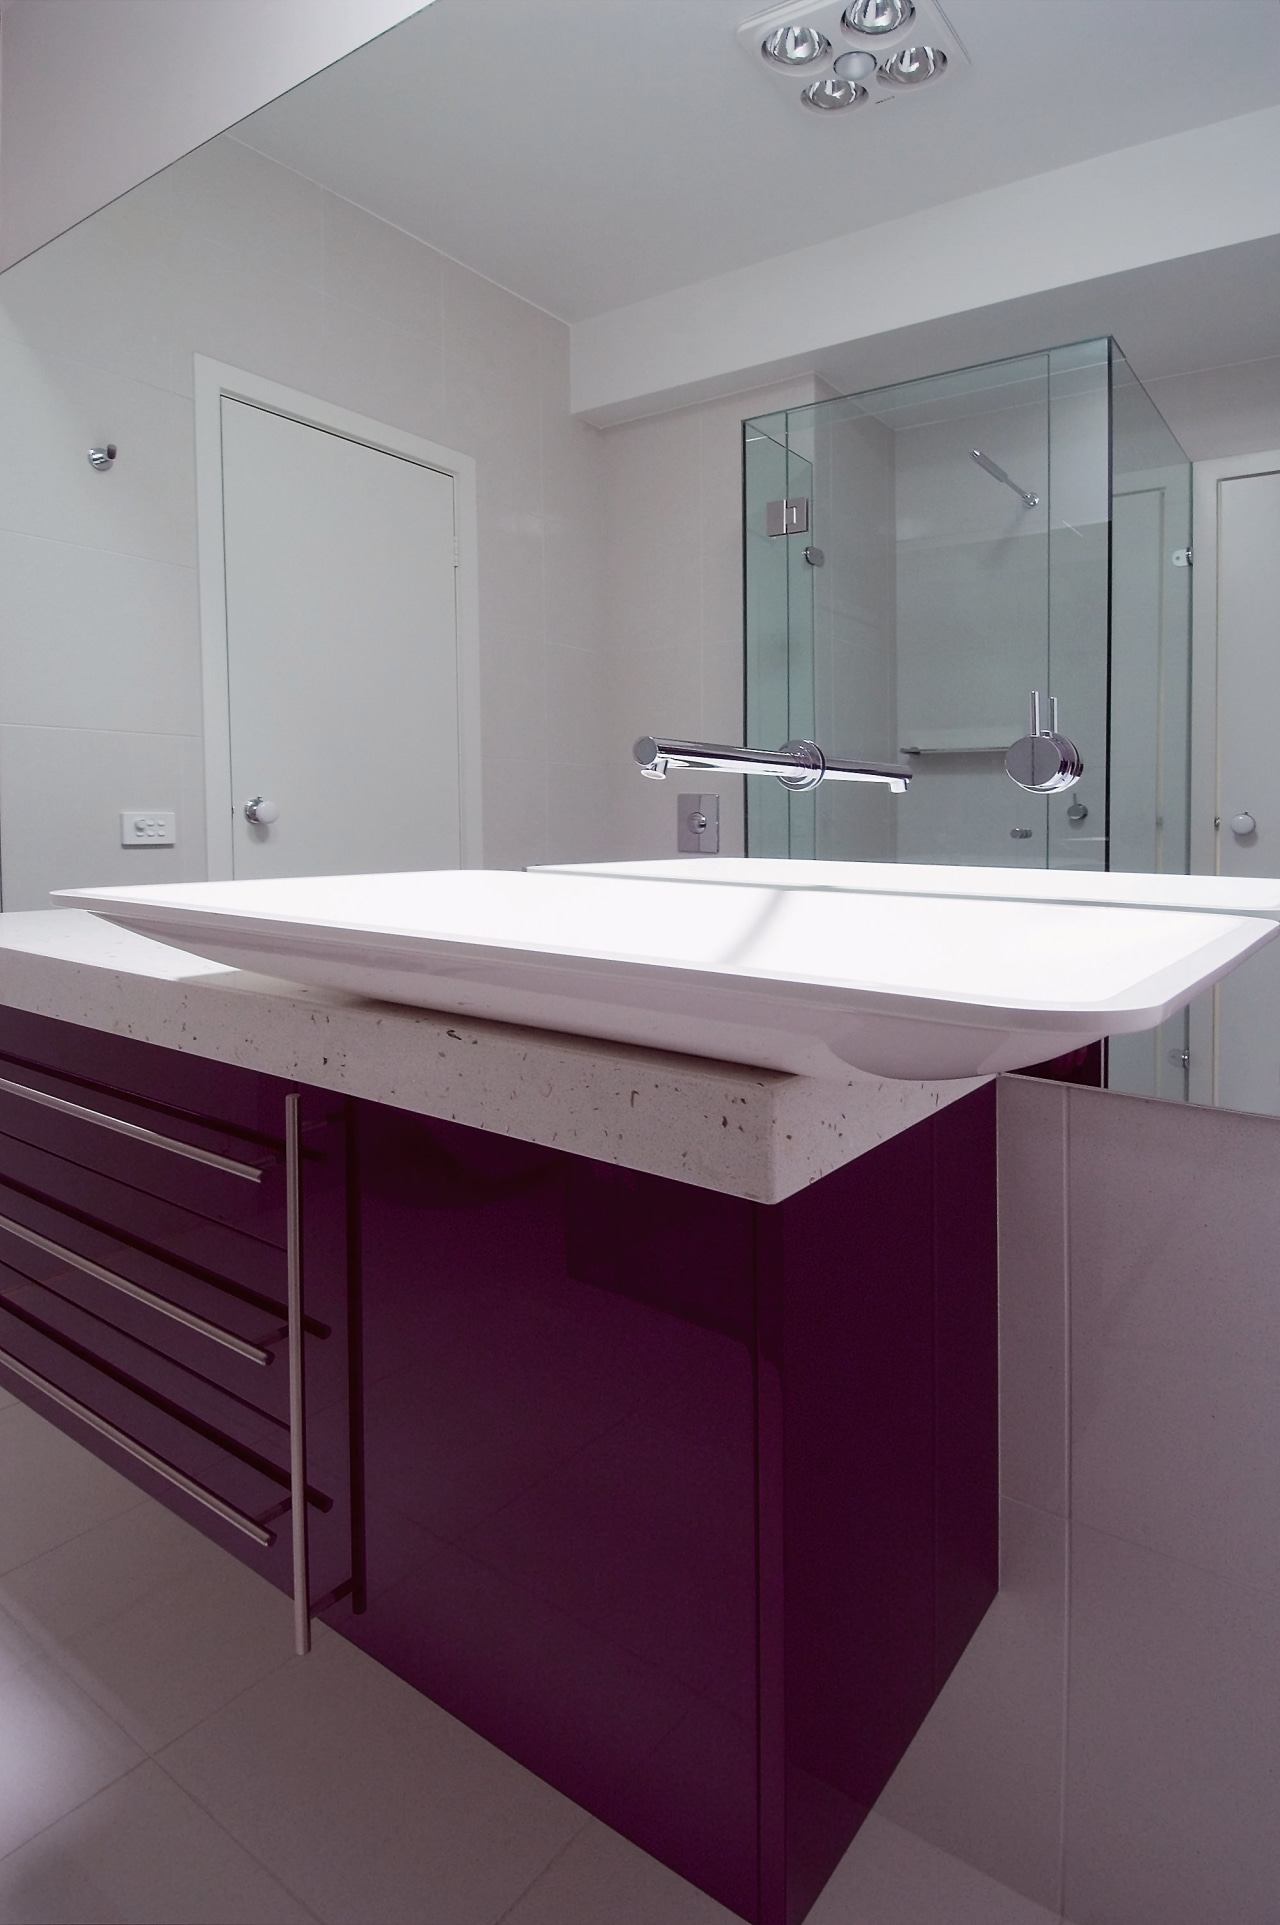 view of the vanity with a custom blood architecture, bathroom, bathroom accessory, bathroom cabinet, bathroom sink, cabinetry, countertop, floor, glass, interior design, kitchen, product design, room, sink, tap, gray